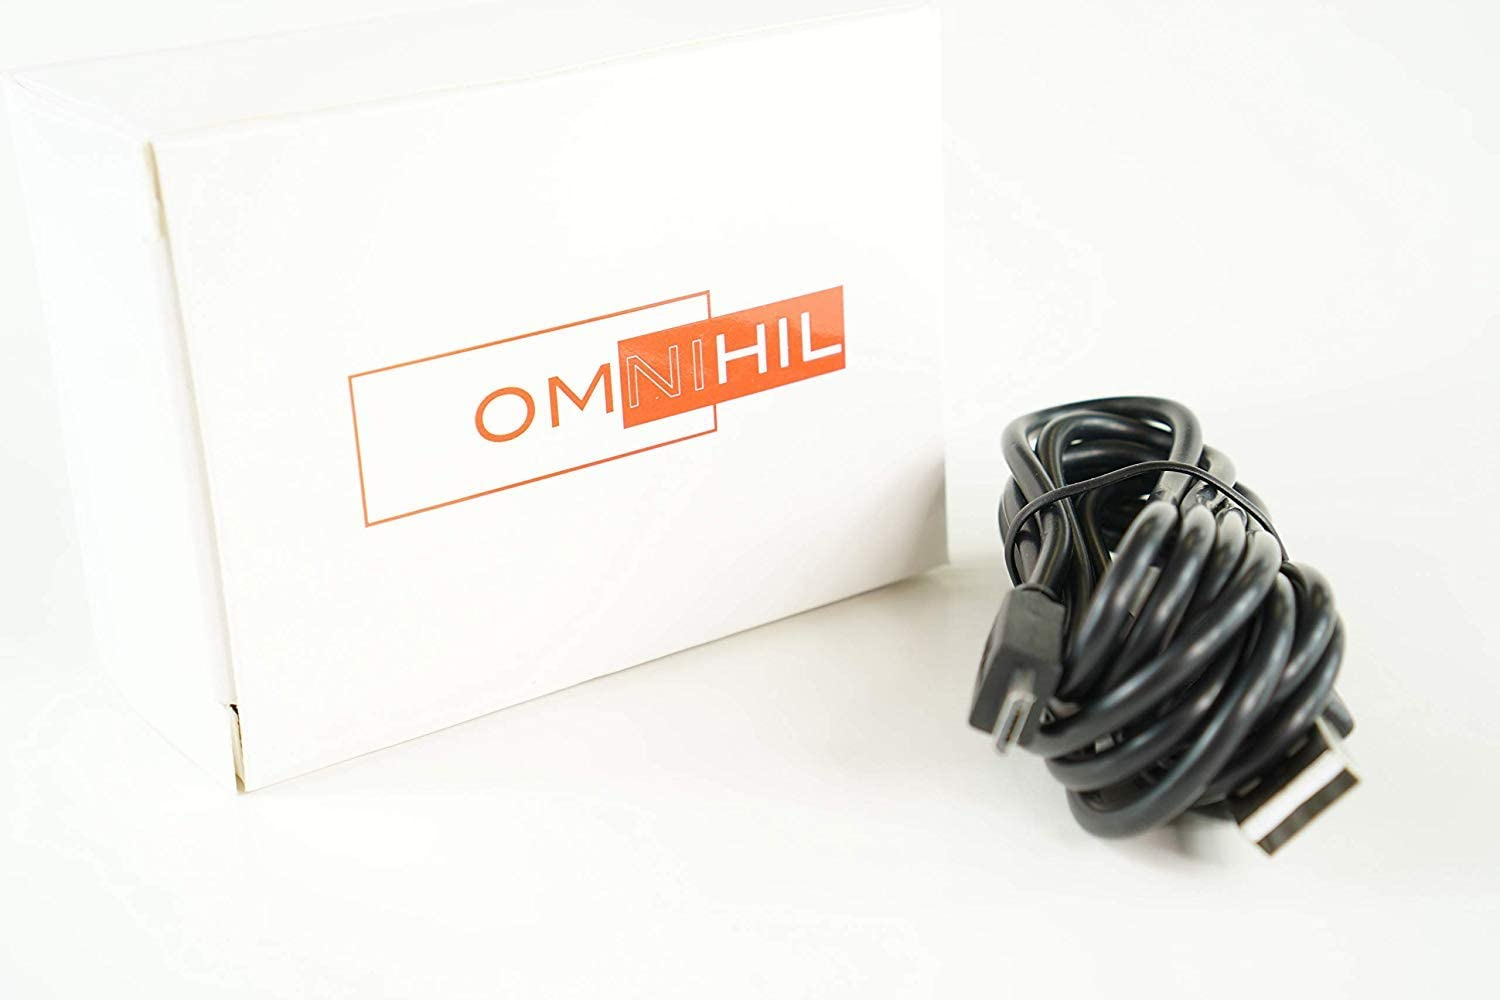 OMNIHIL 5 Feet Long High Speed USB 2.0 Cable Compatible with Sennheiser Momentum 2 Wireless